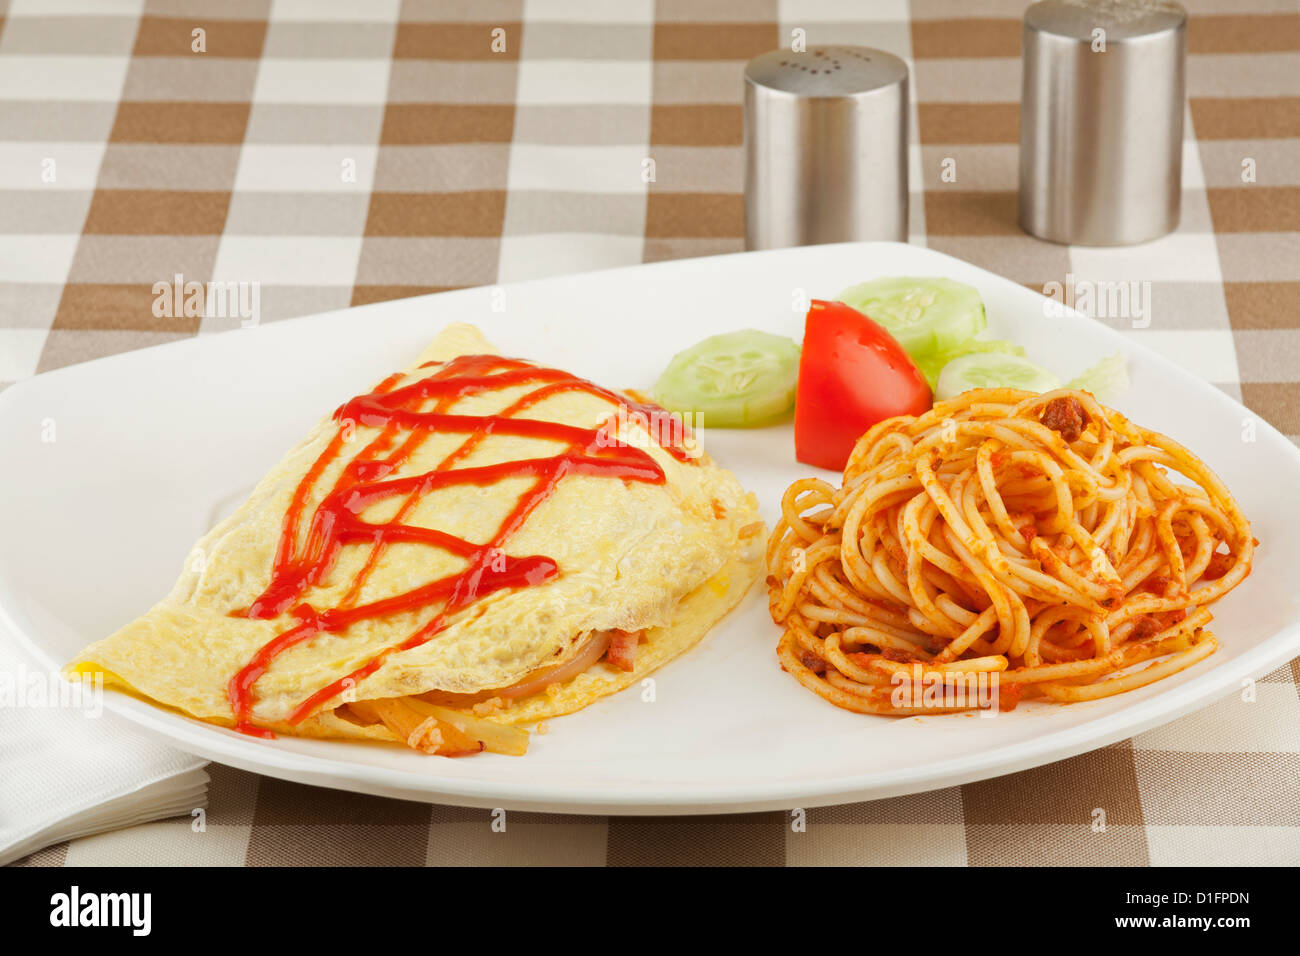 Vegetable egg omelet and pasta dish - Stock Image